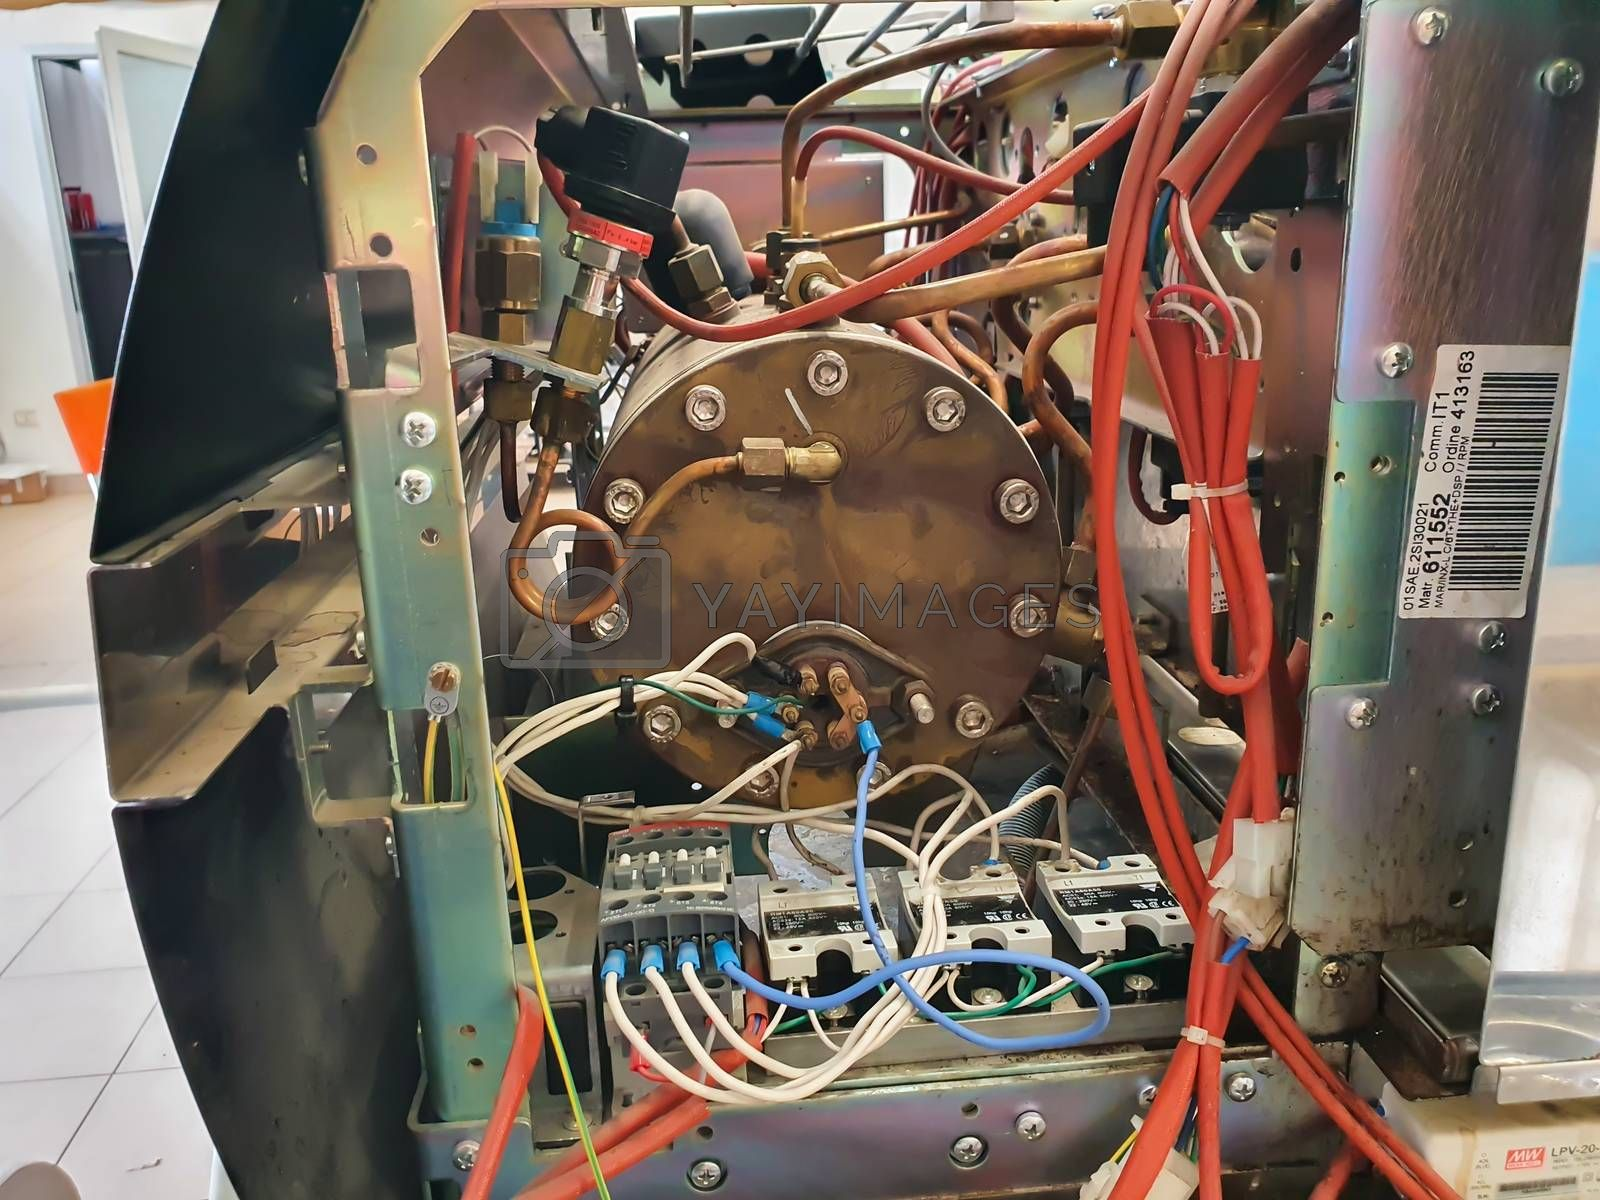 terni,italy august 18 2020:disassembled coffee machine electrical parts